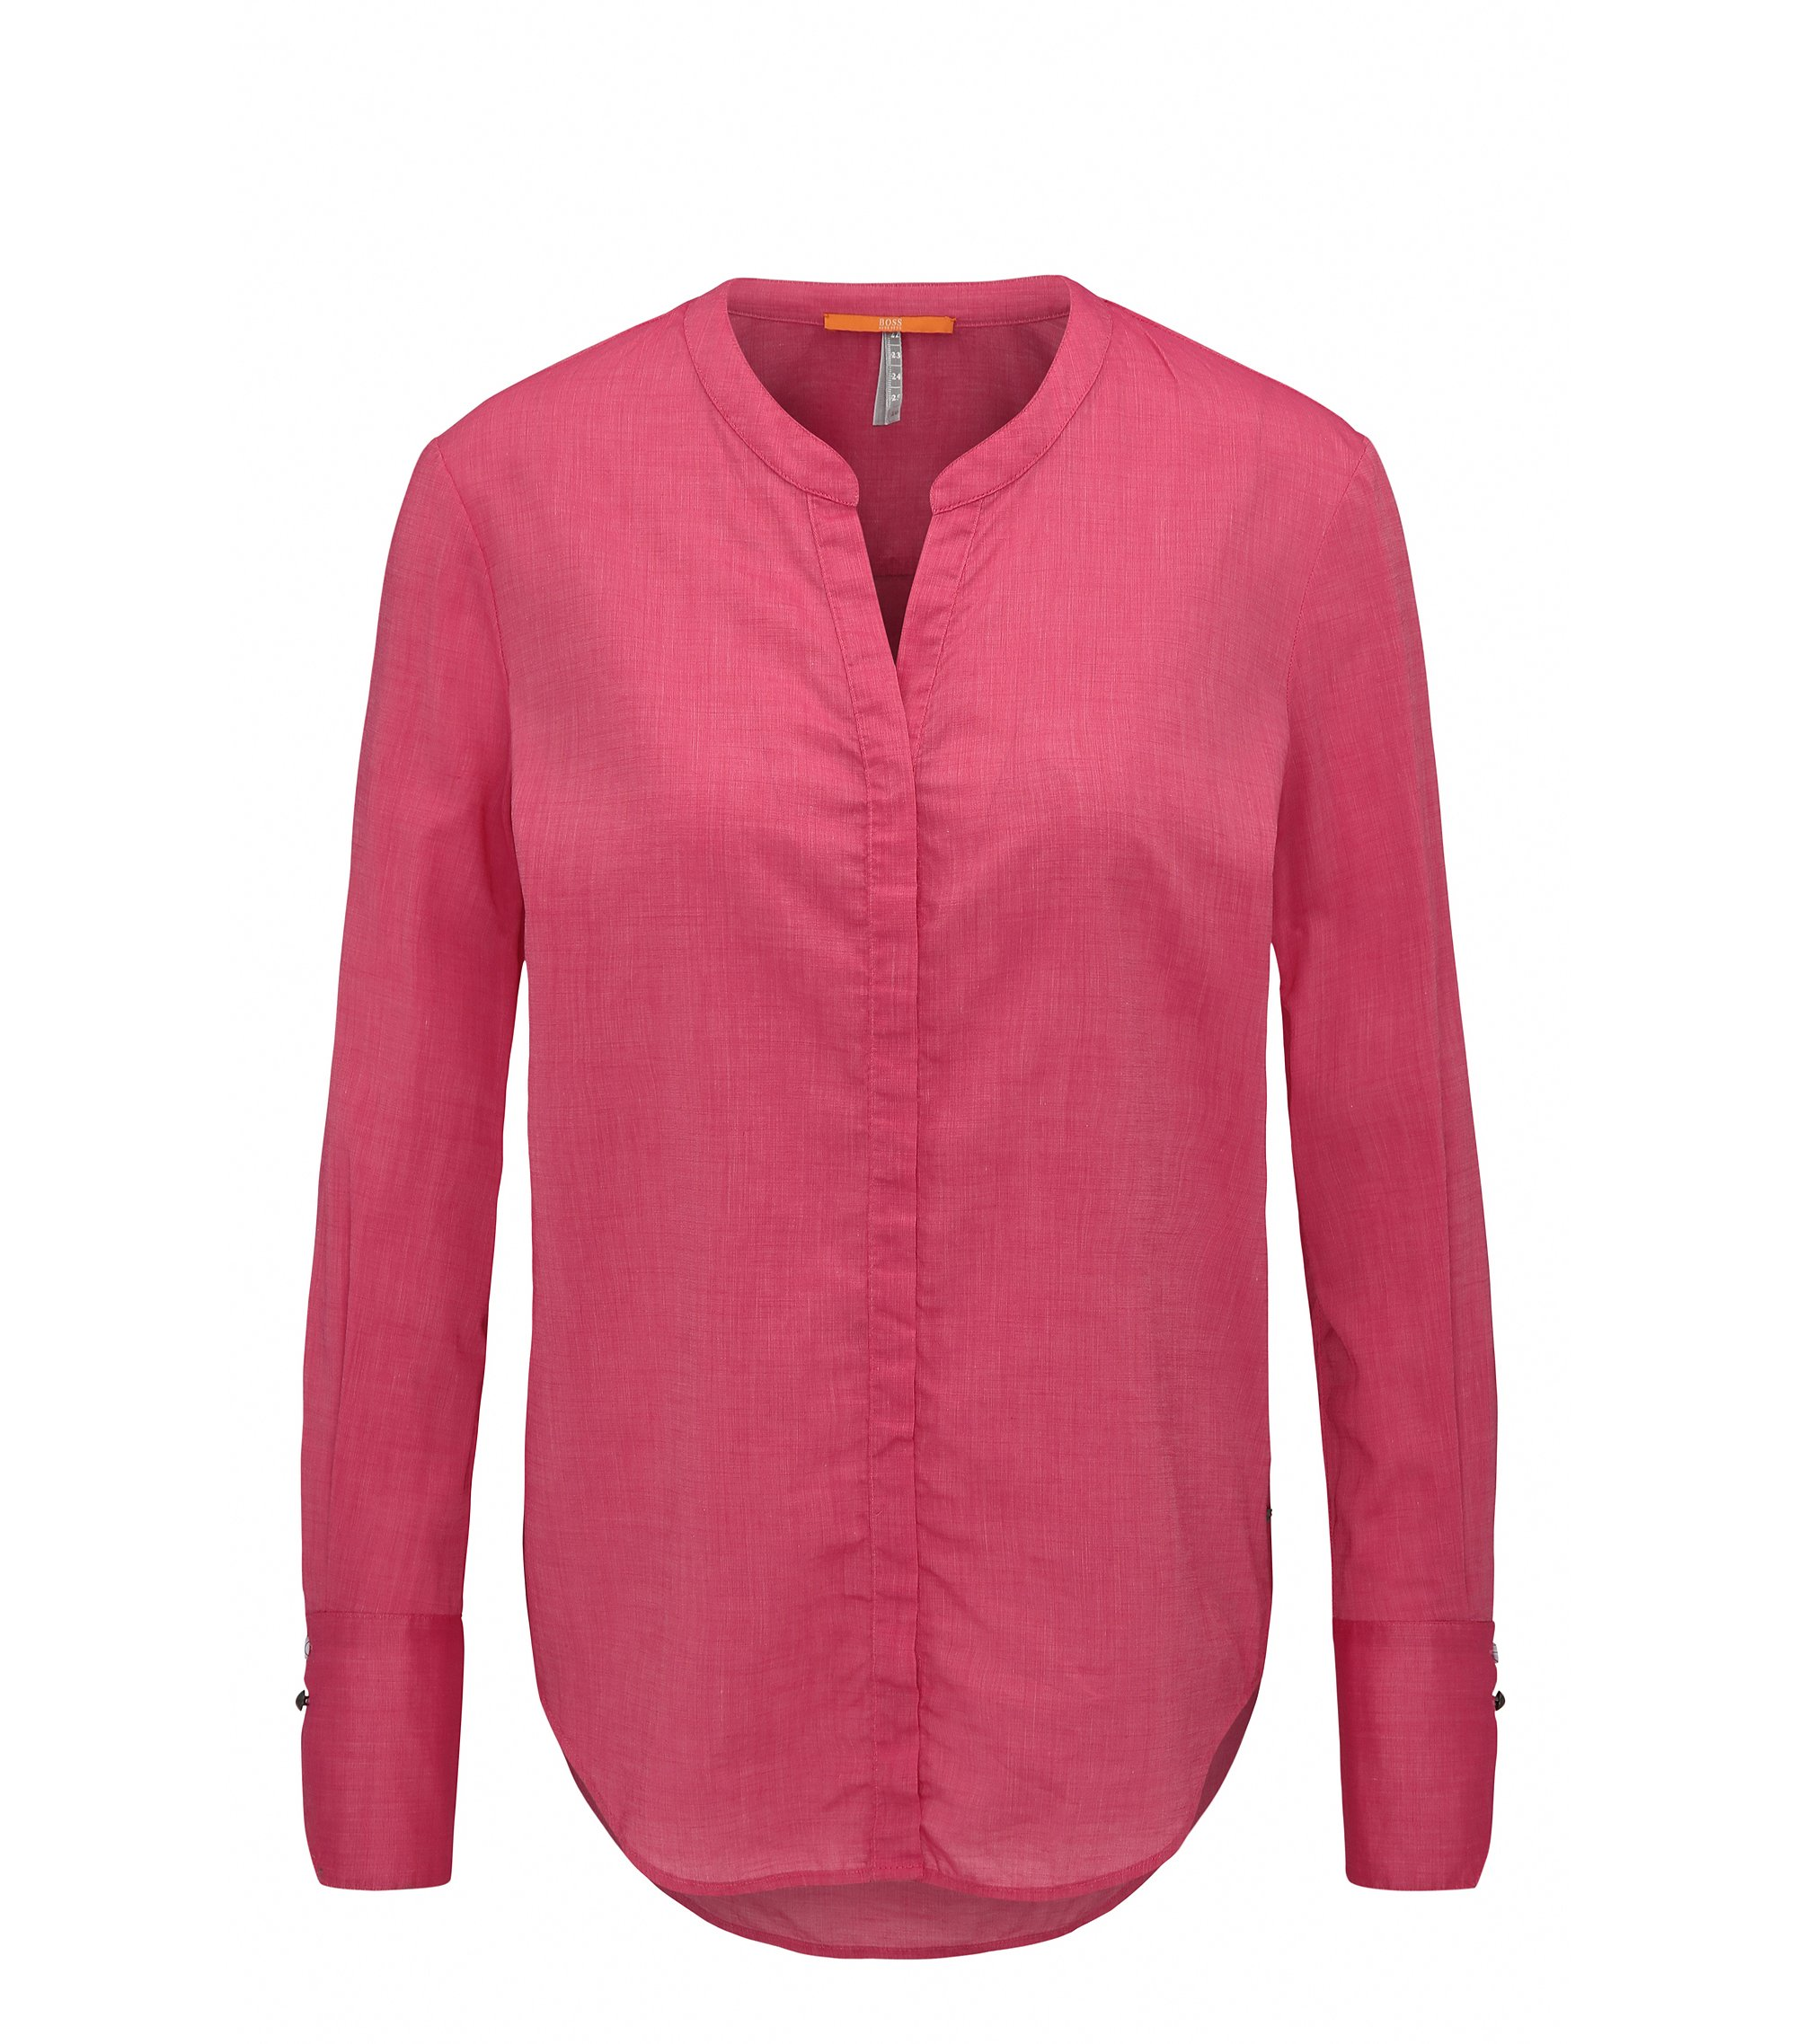 Chemisier Regular Fit en chambray de coton mélangé, Rose